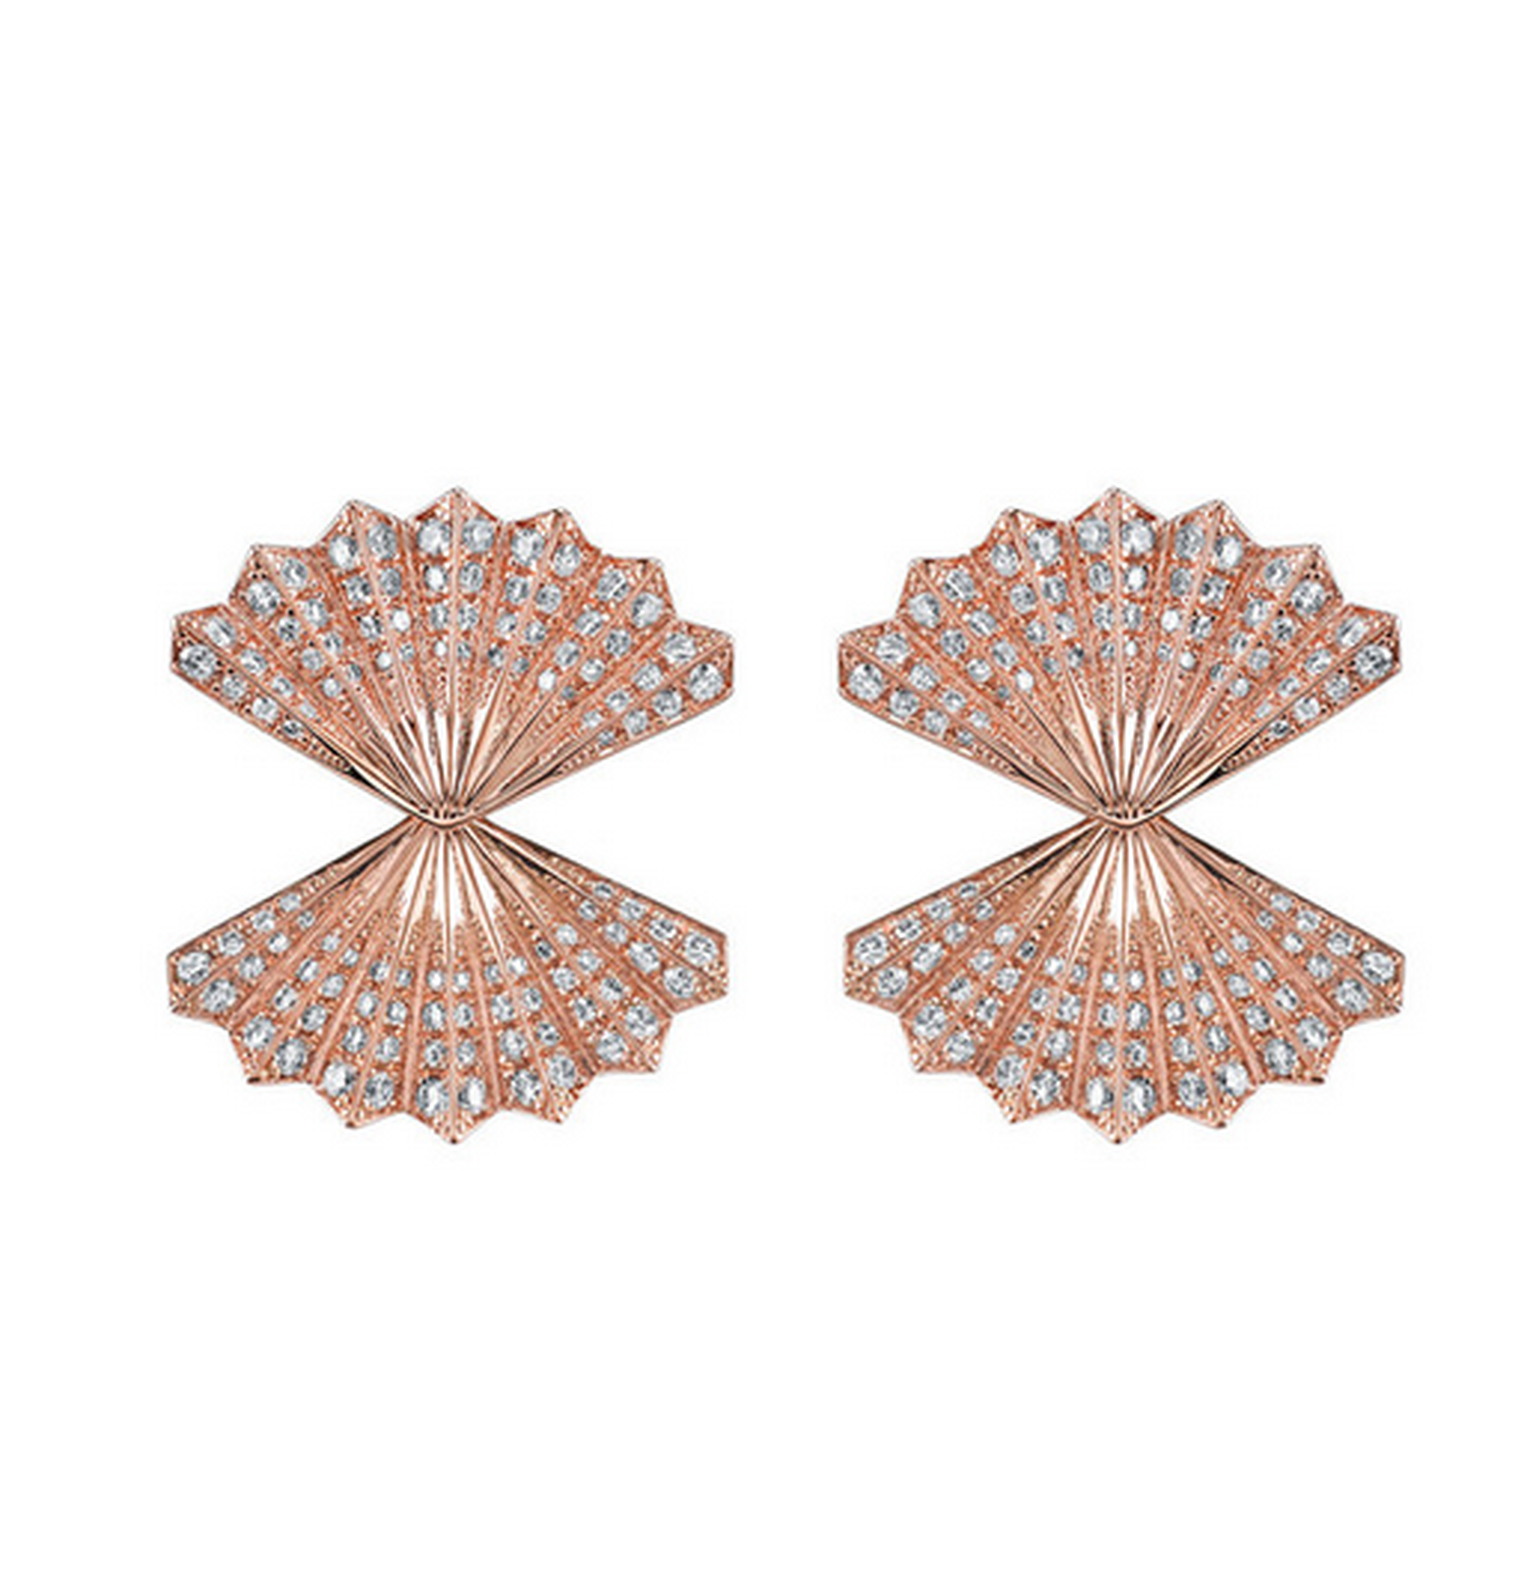 Rose gold double-fan diamond earrings by LA-based designer Anita Ko (£7,000, available at net-a-porter.com).